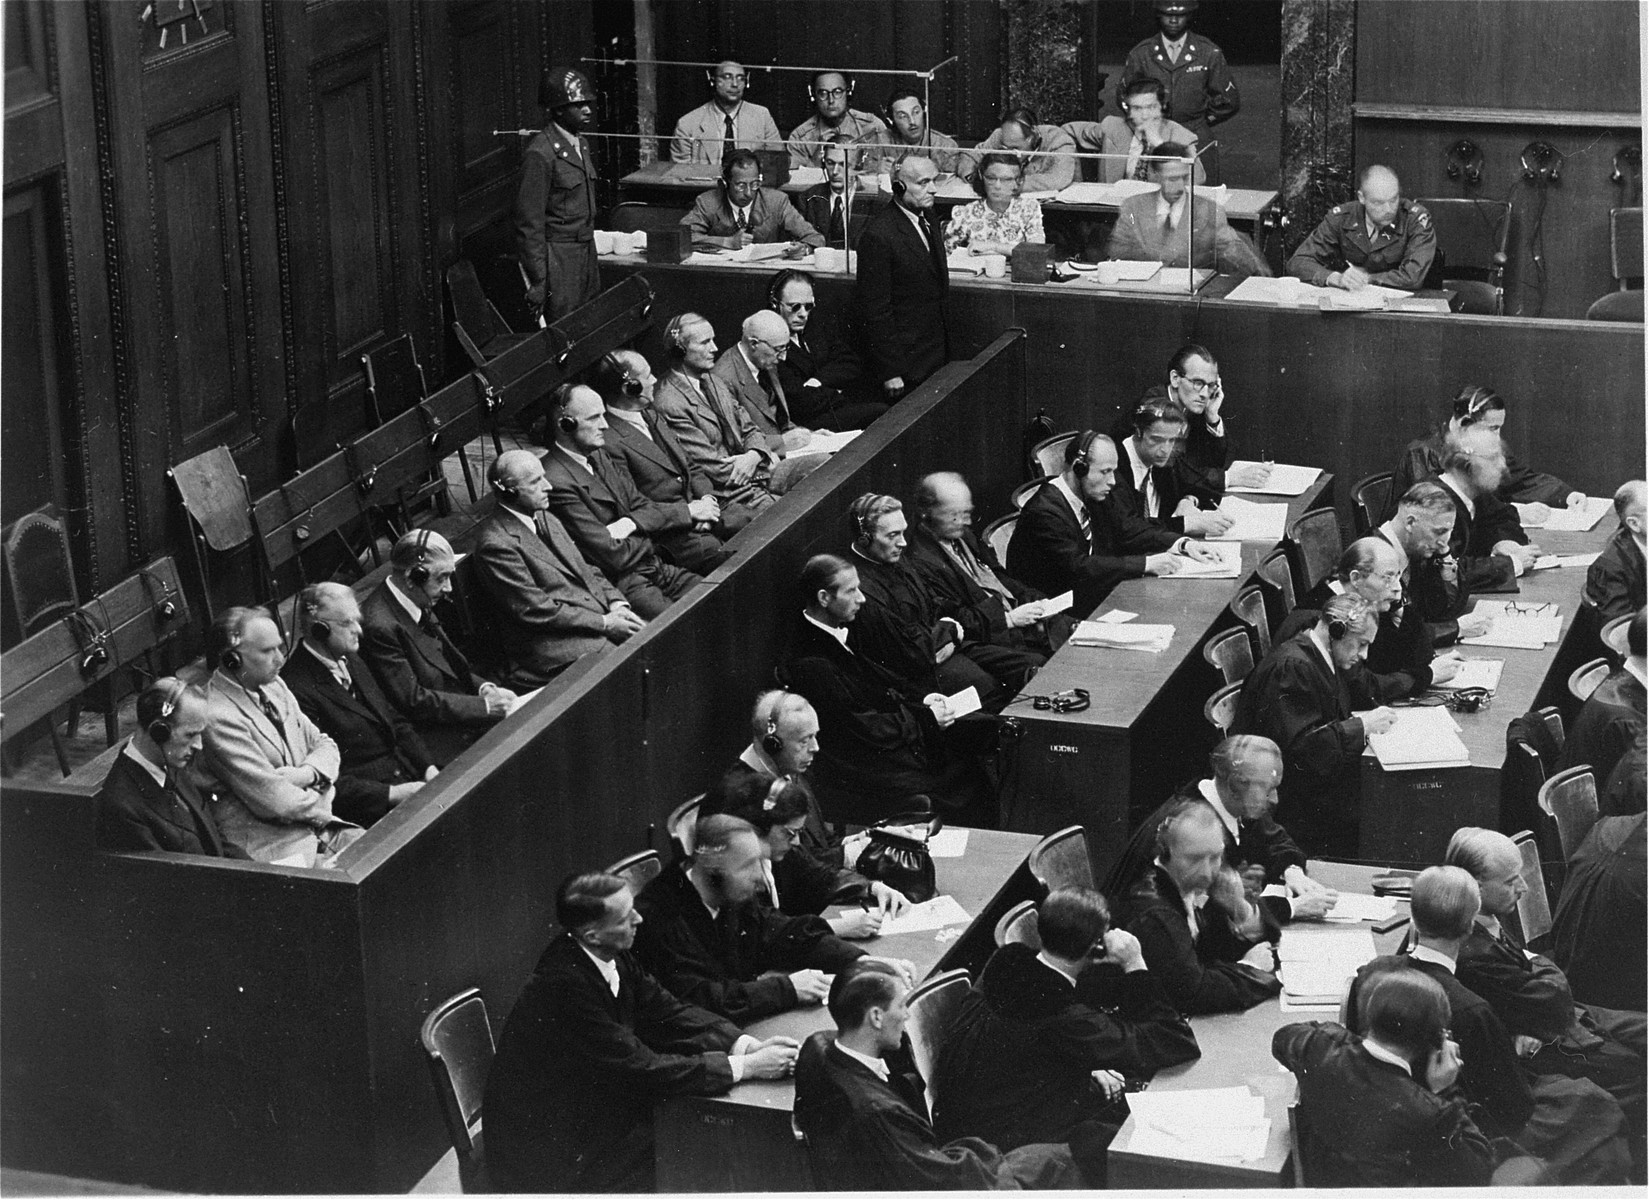 The defendants (left) and their legal counsel in the courtroom during the Krupp Trial.